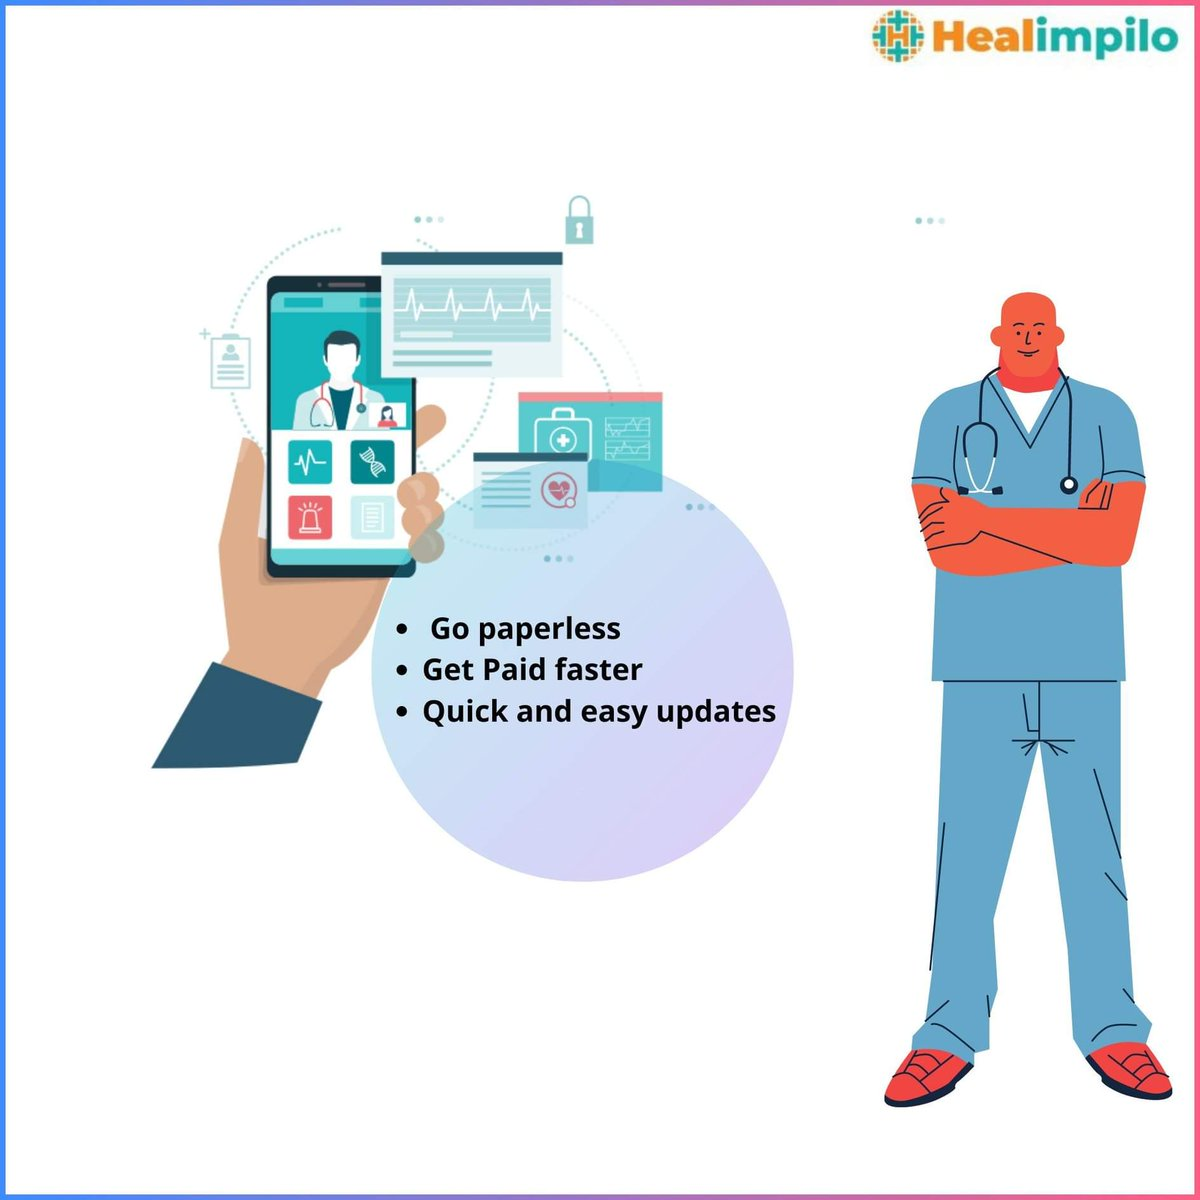 -Quick and easy update of Appointments and Patient reports on laptop screen - Getting paperless and managing all activities from your portal #doctors #onlineportal #technology #ehr #software #healimpilo #practicemanagement #bestfordoctors https://t.co/PEIrAOdPUh